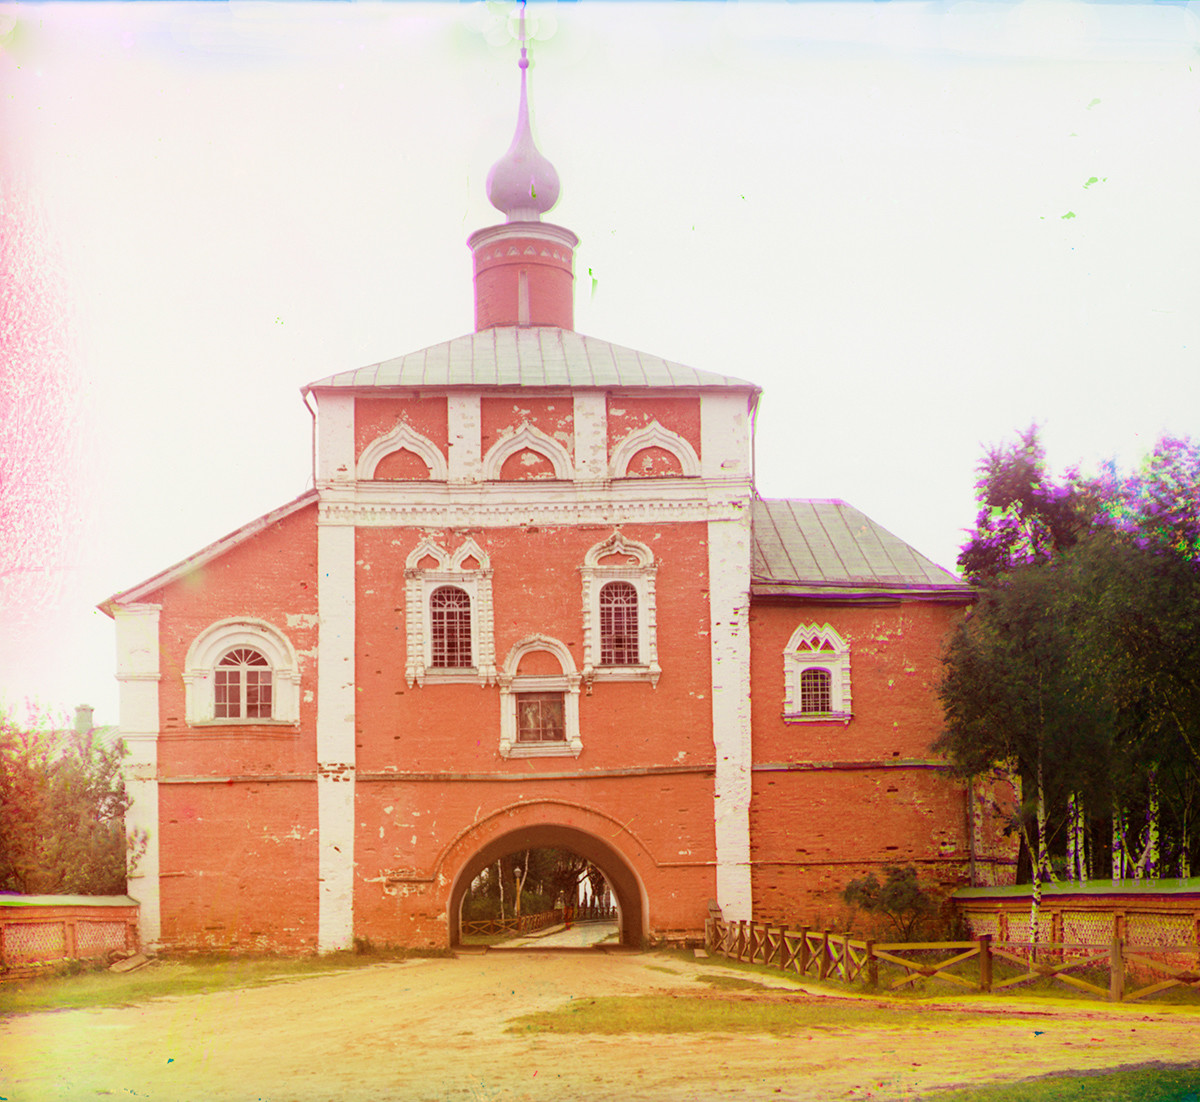 Savior-St. Evfimy Monastery. Church of the Annunciation over Holy Gate, south view. Summer 1912